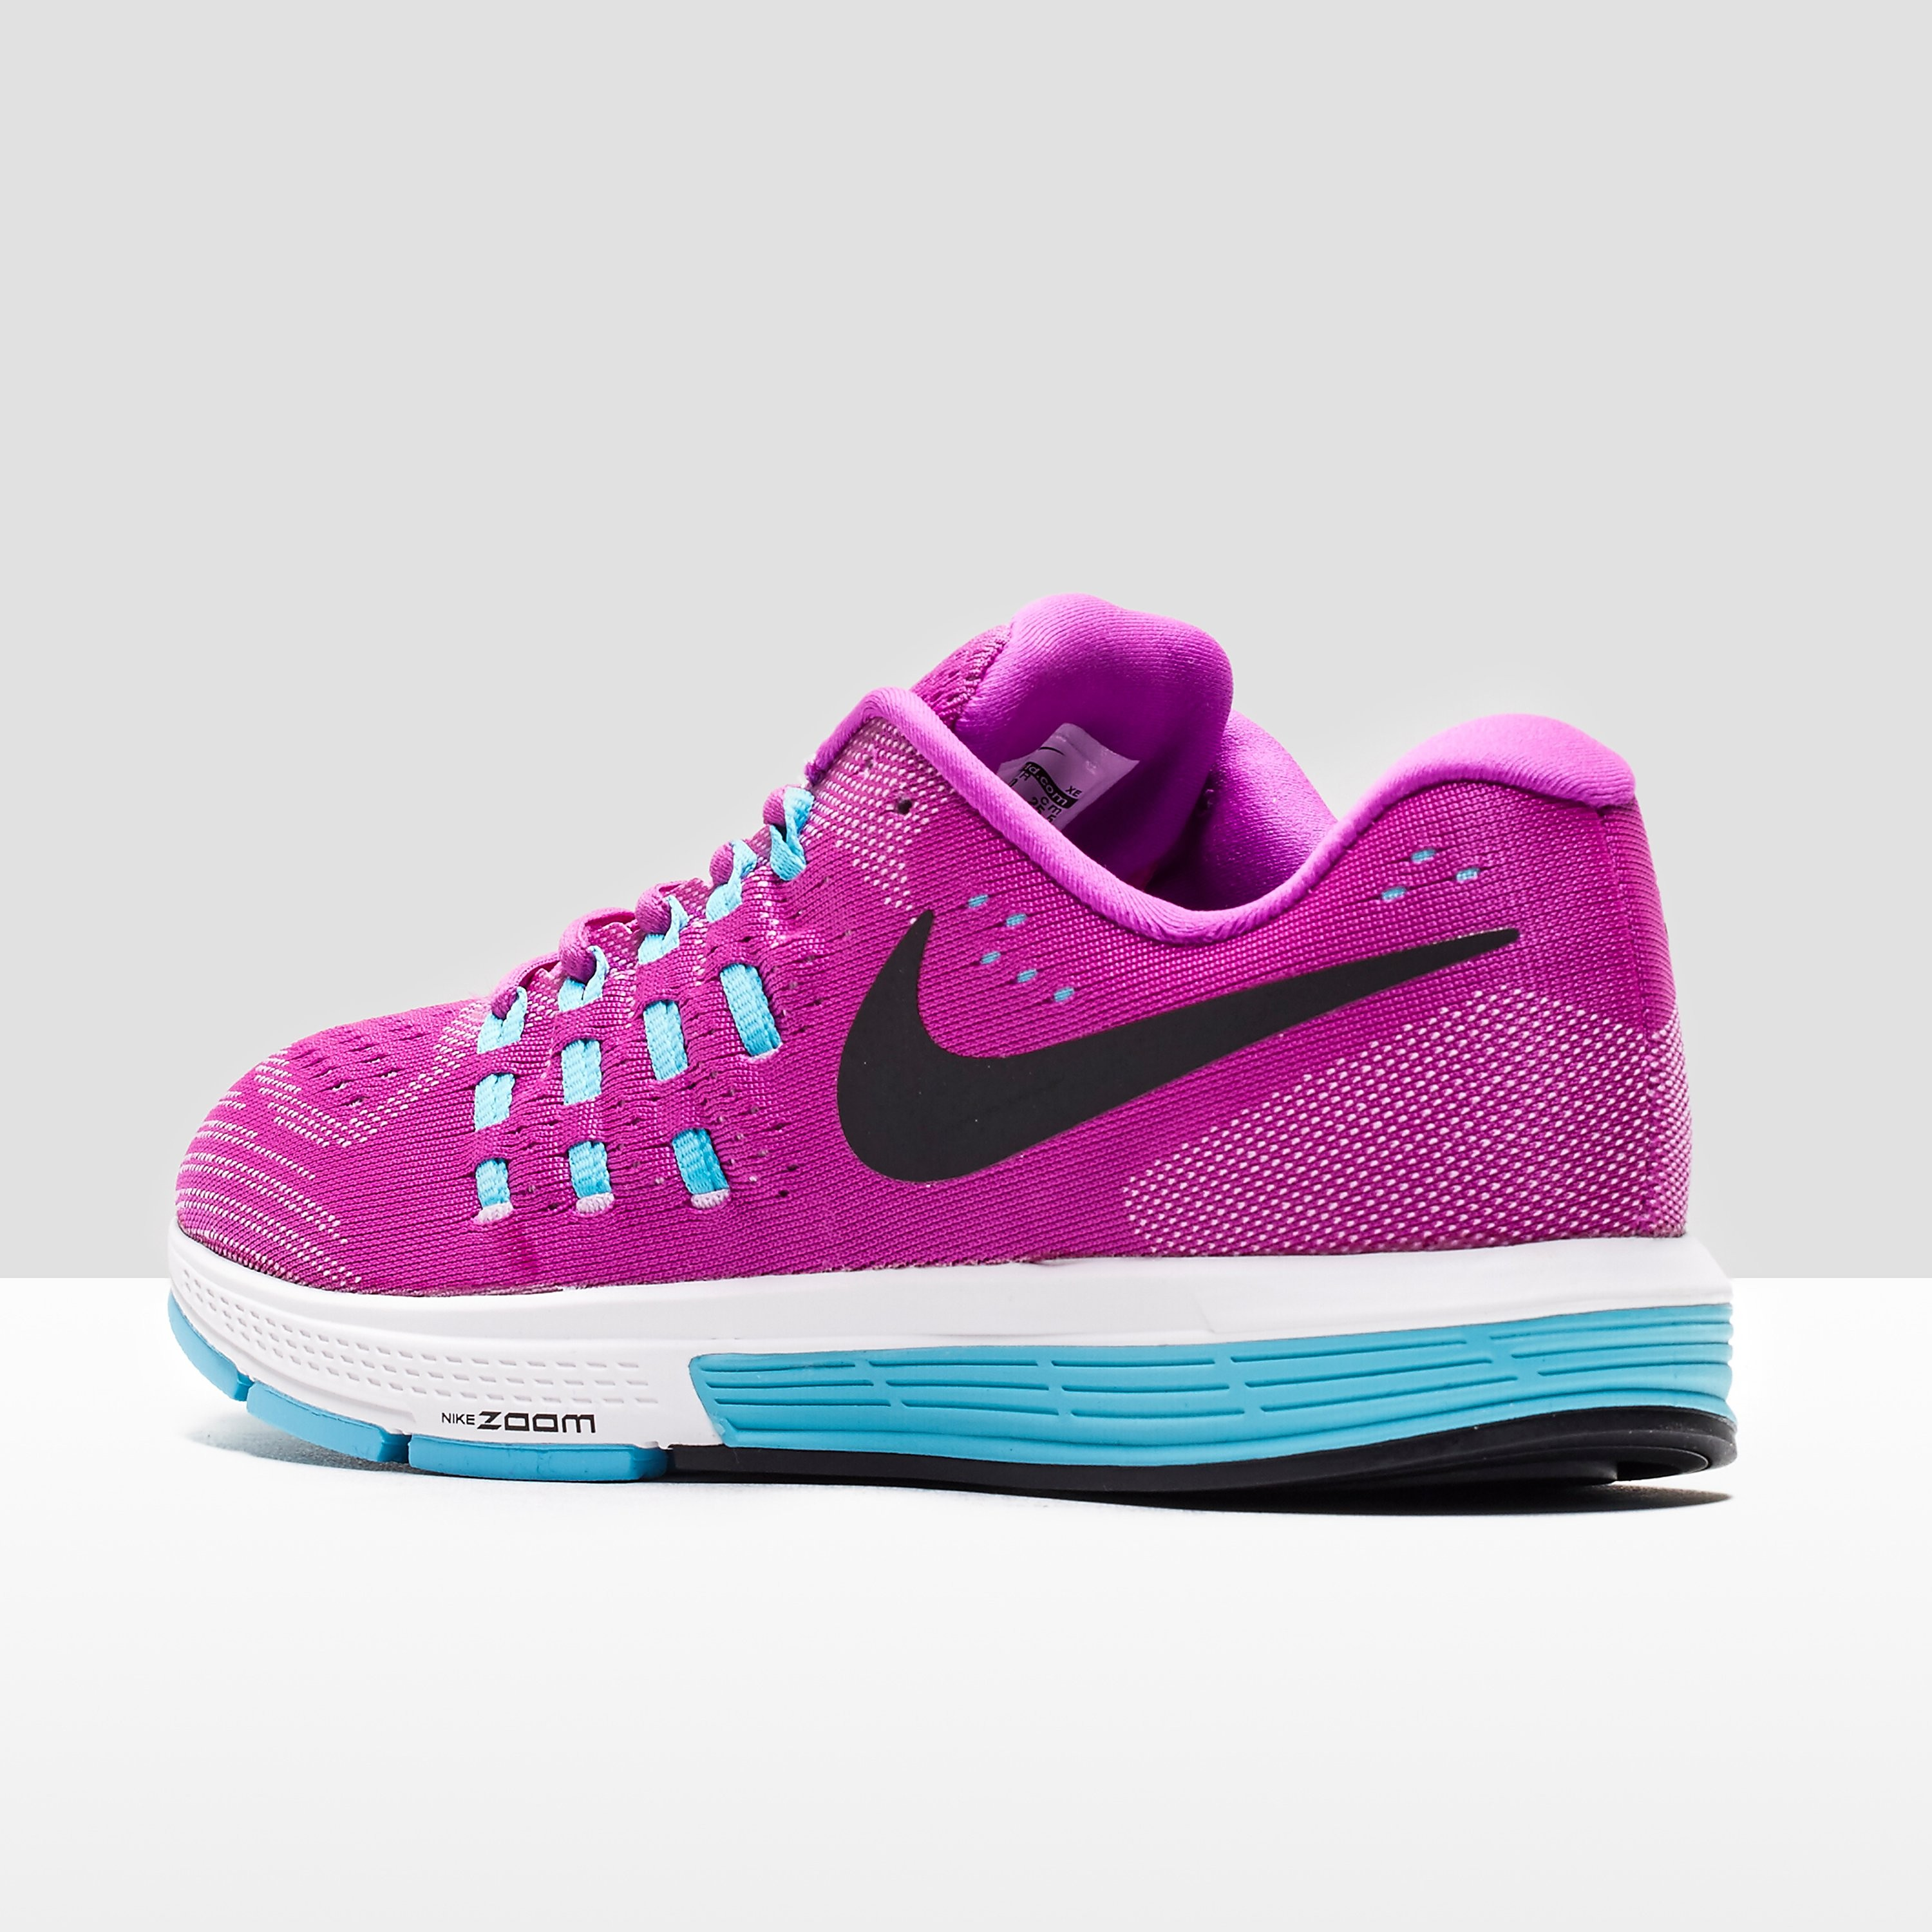 Nike Air Zoom Vomero 11 Ladies Running Shoes